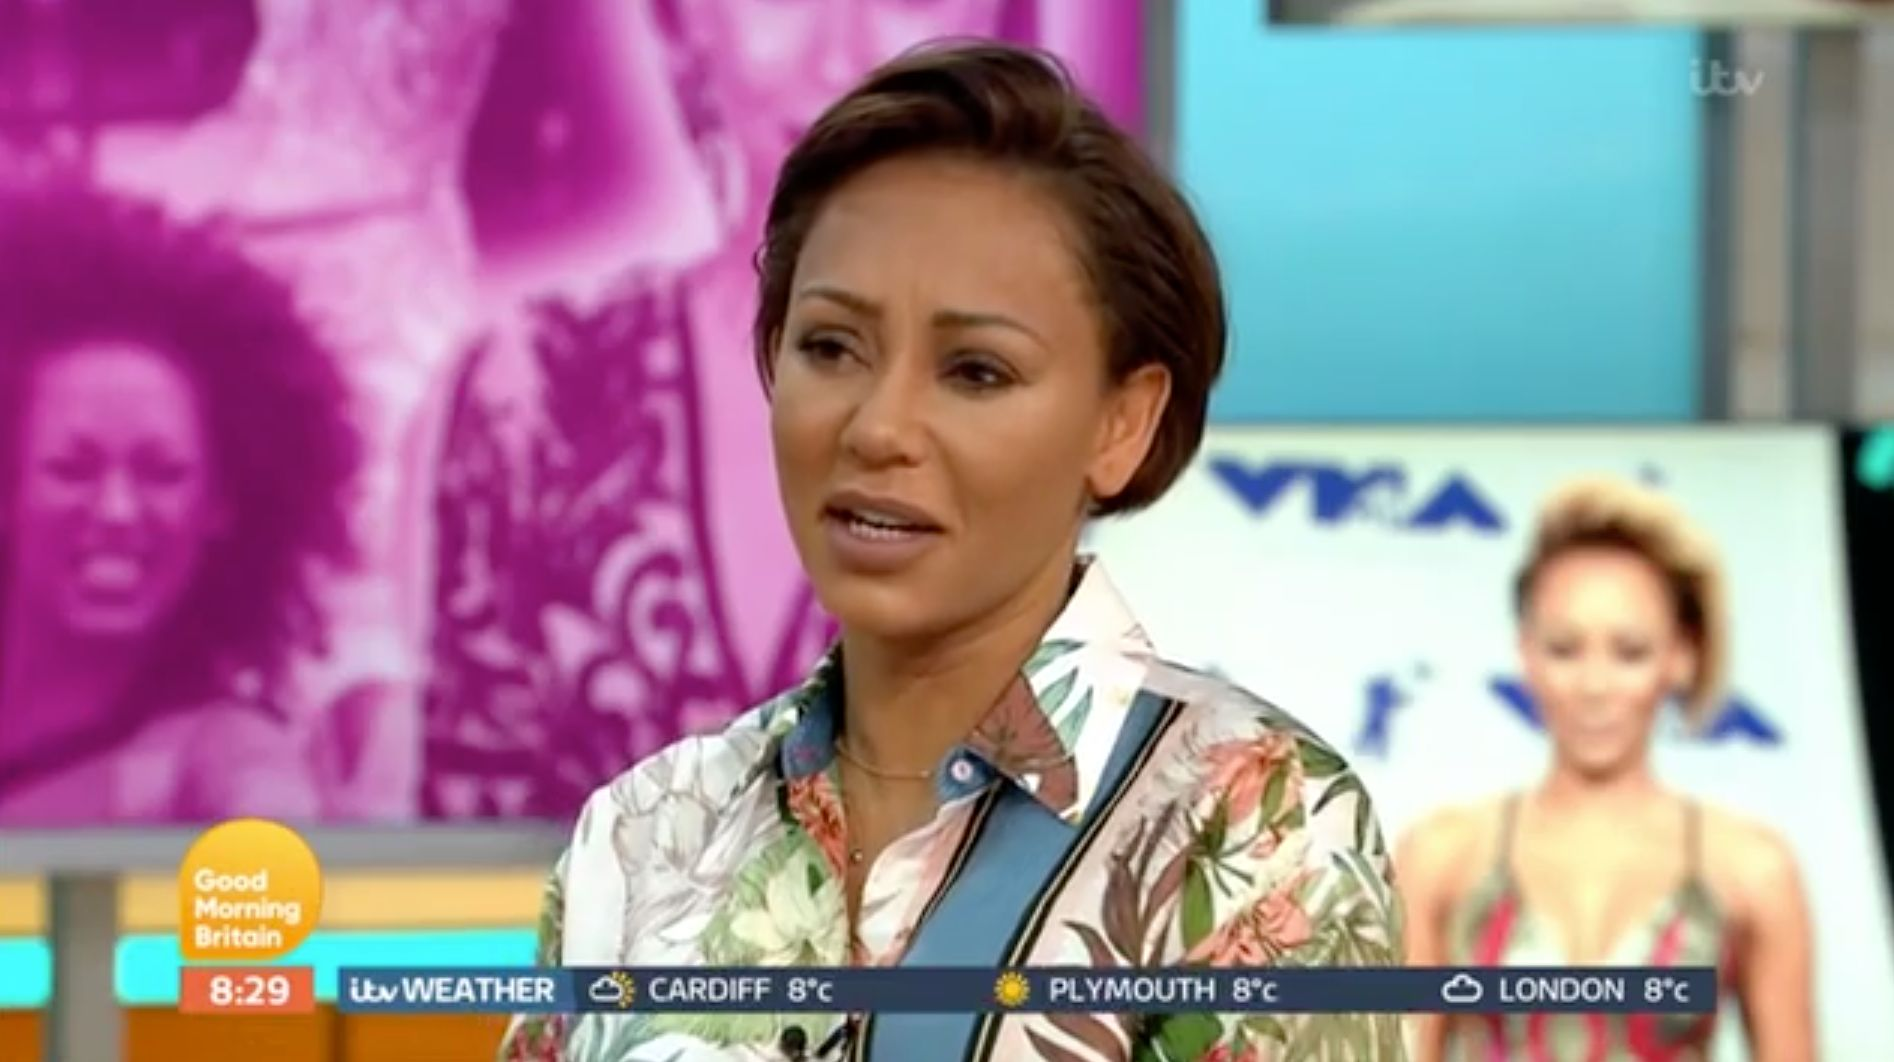 Mel B opens up about her life struggles